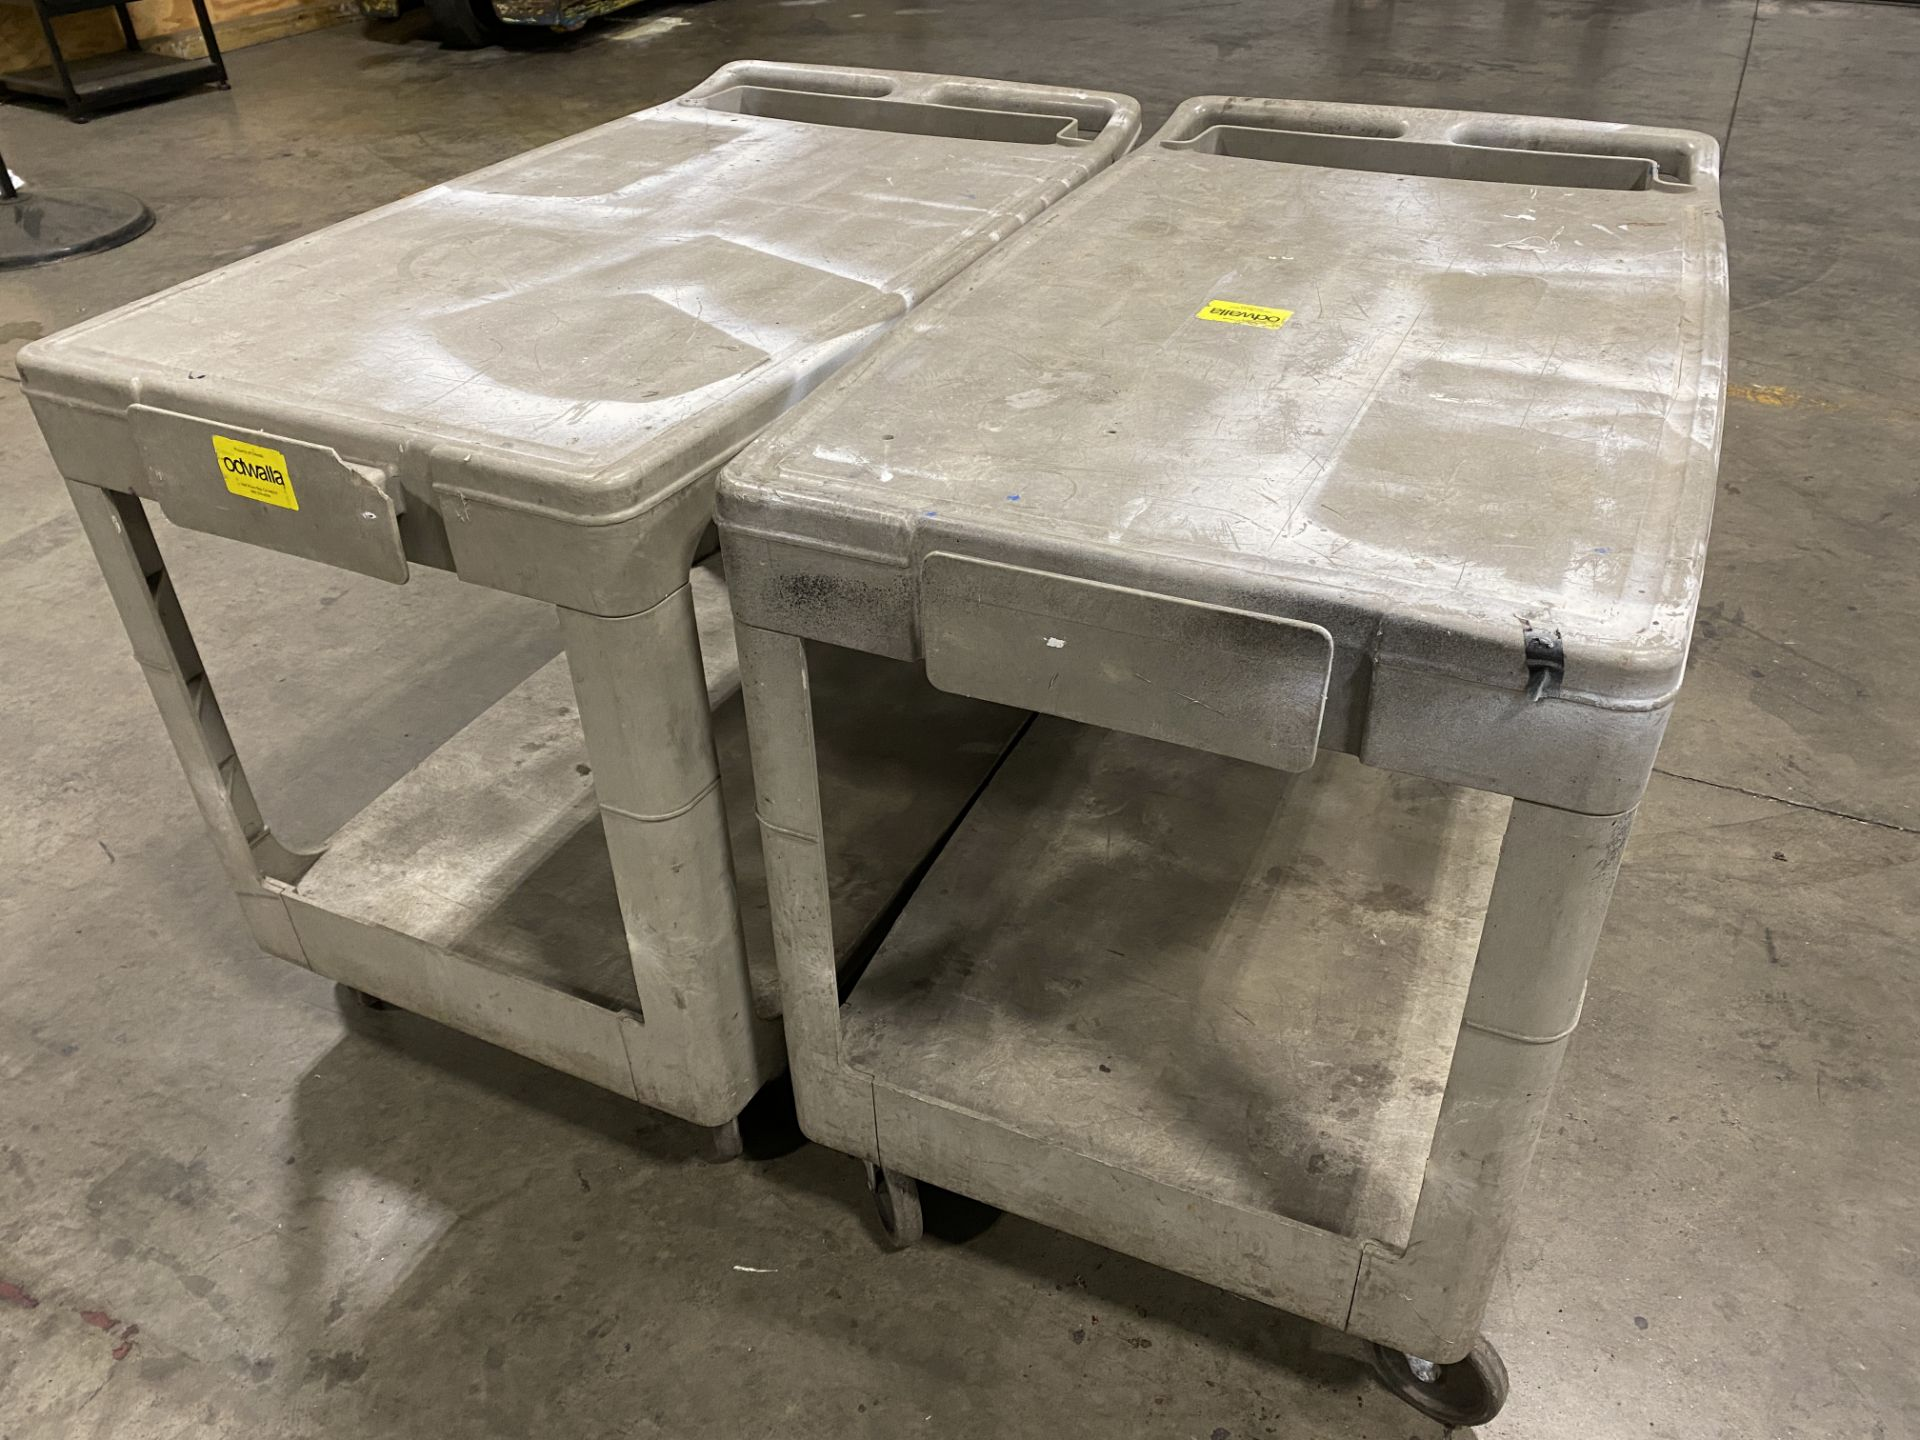 """Lot of (2) Rubbermaid hard plastic rolling two-tier carts, 36"""" X 24"""" - Image 2 of 2"""